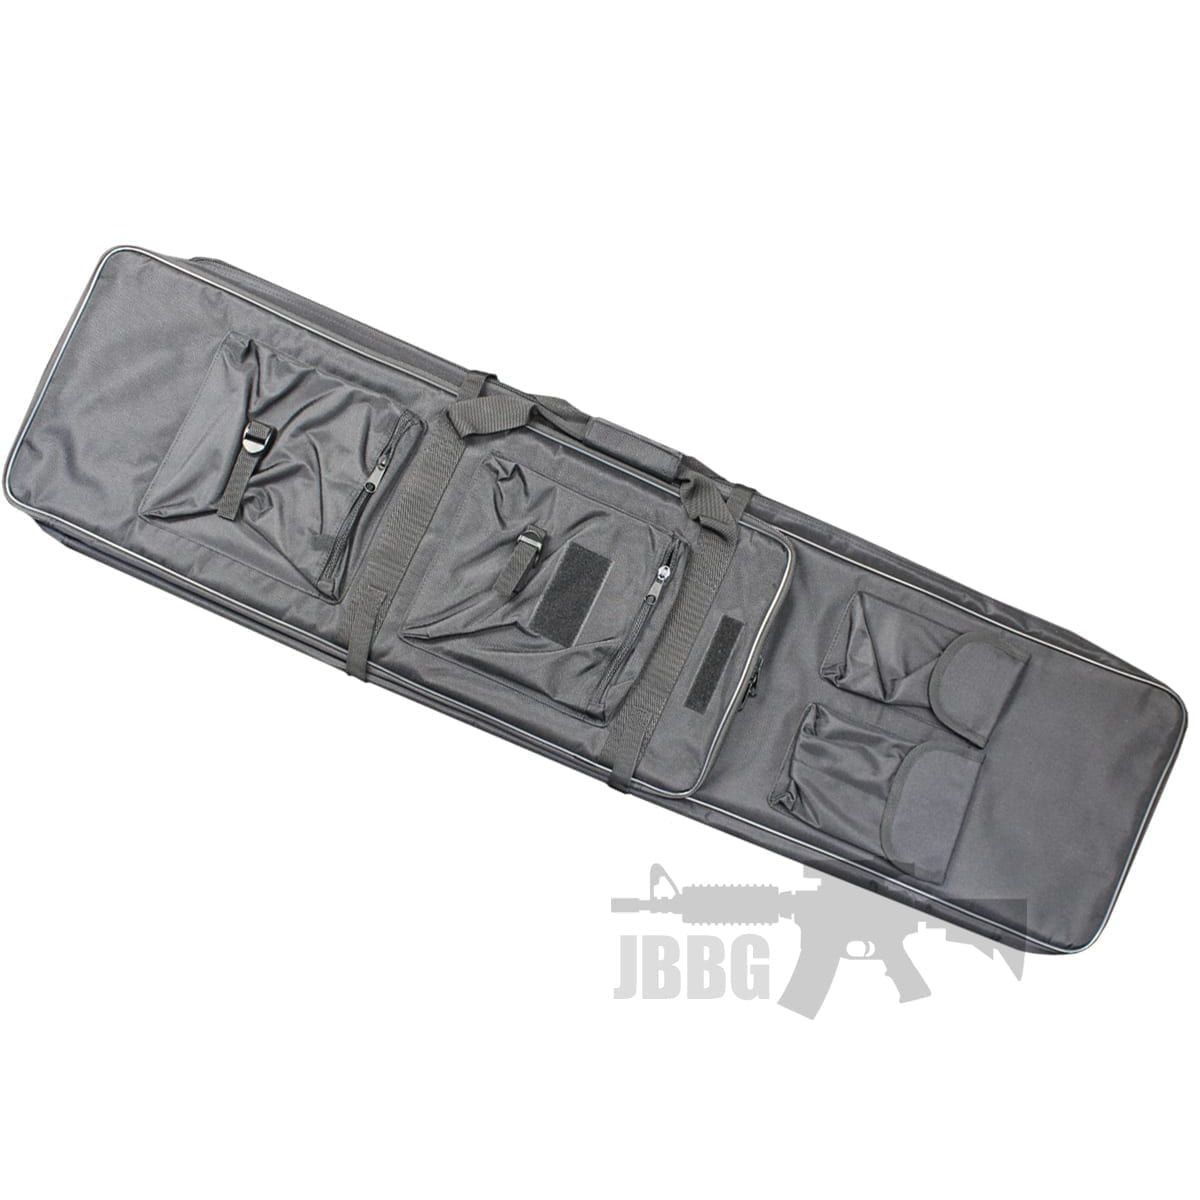 gb04 rifle bag